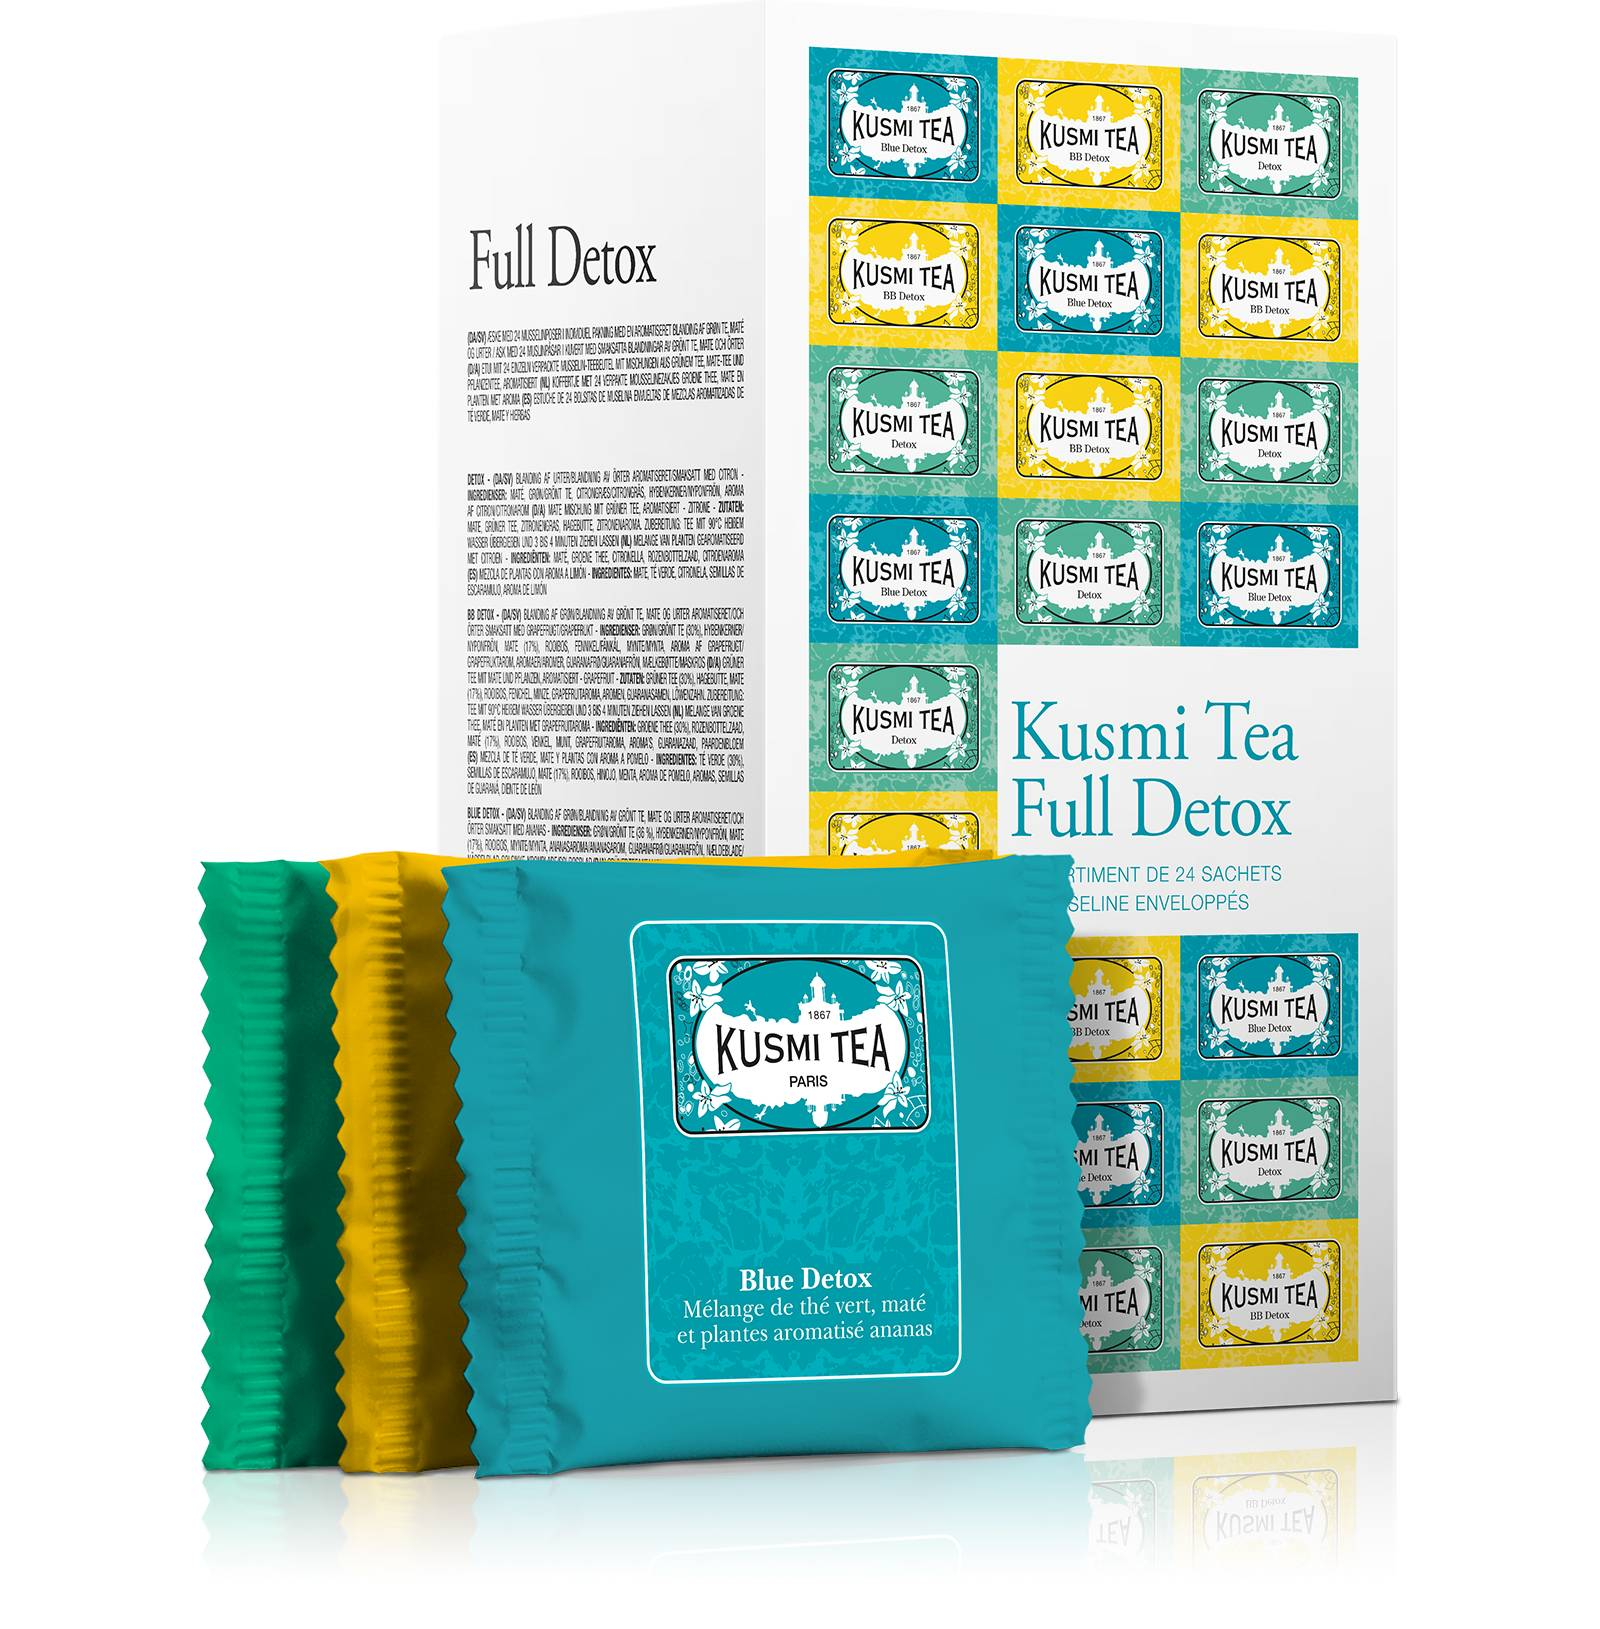 KUSMI TEA Coffret thés Full Detox